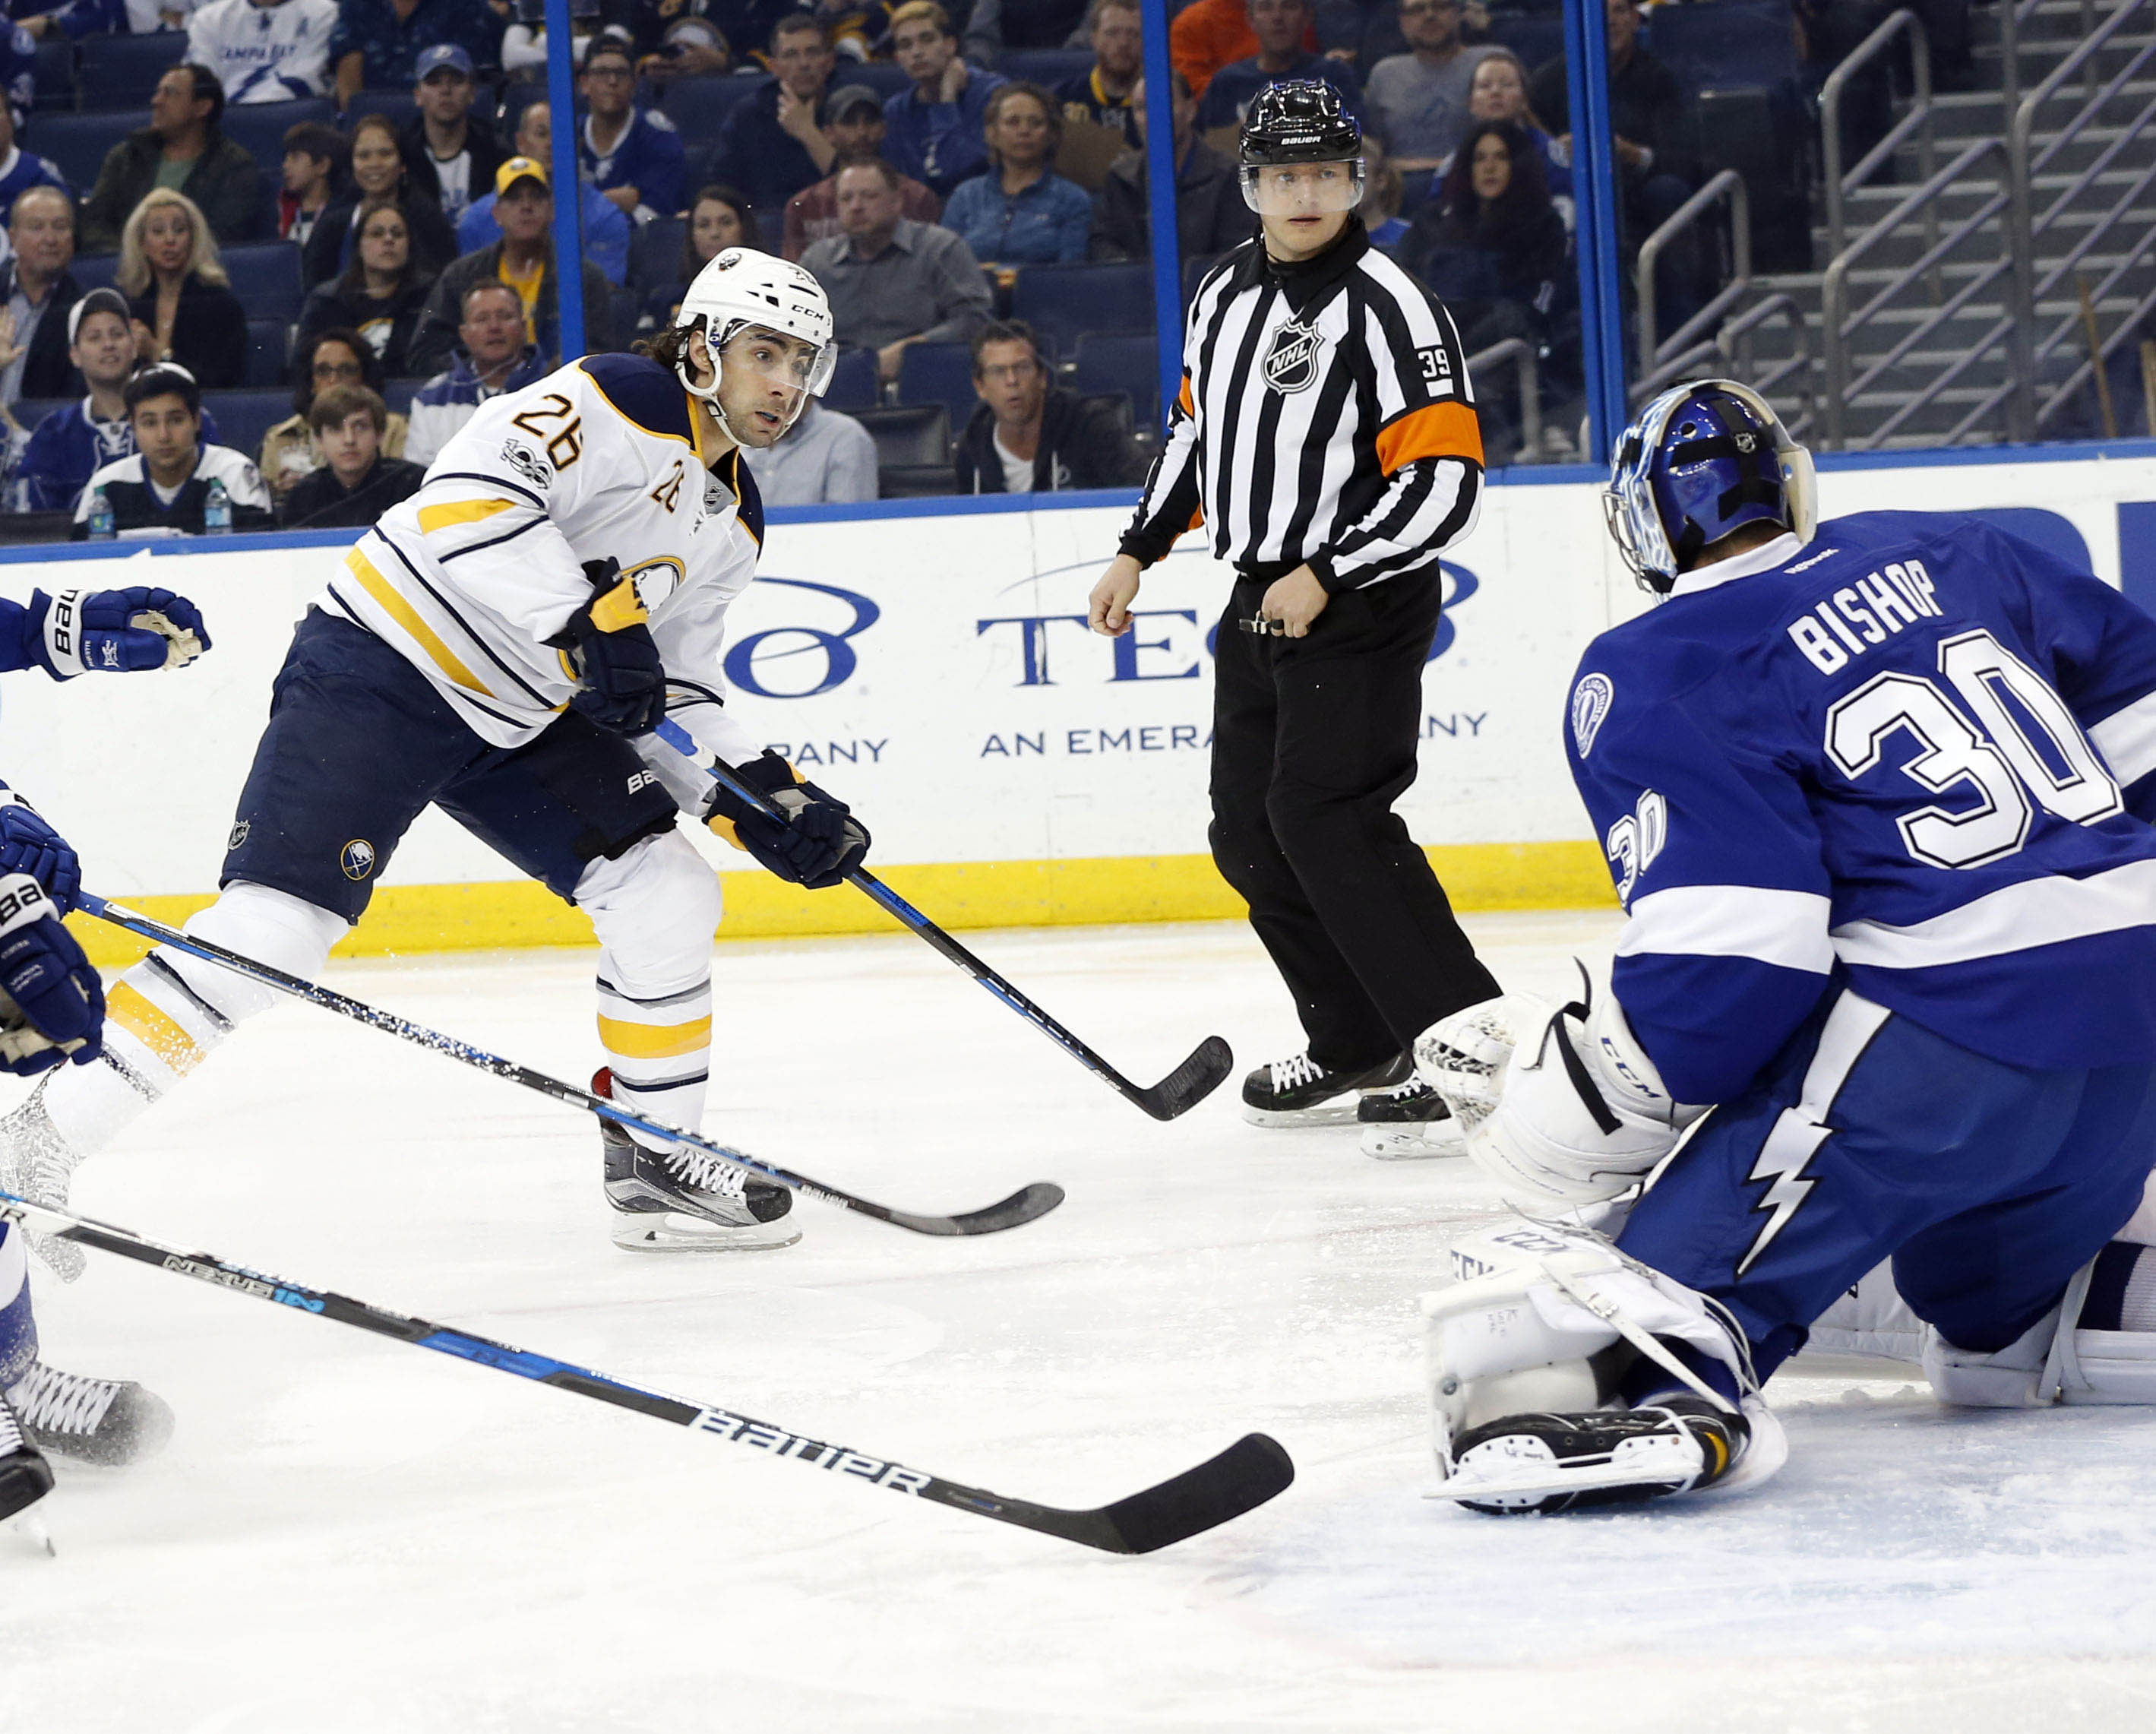 Matt Moulson beats Tampa goalie Ben Bishop for the game's first goal (USA Today Images).